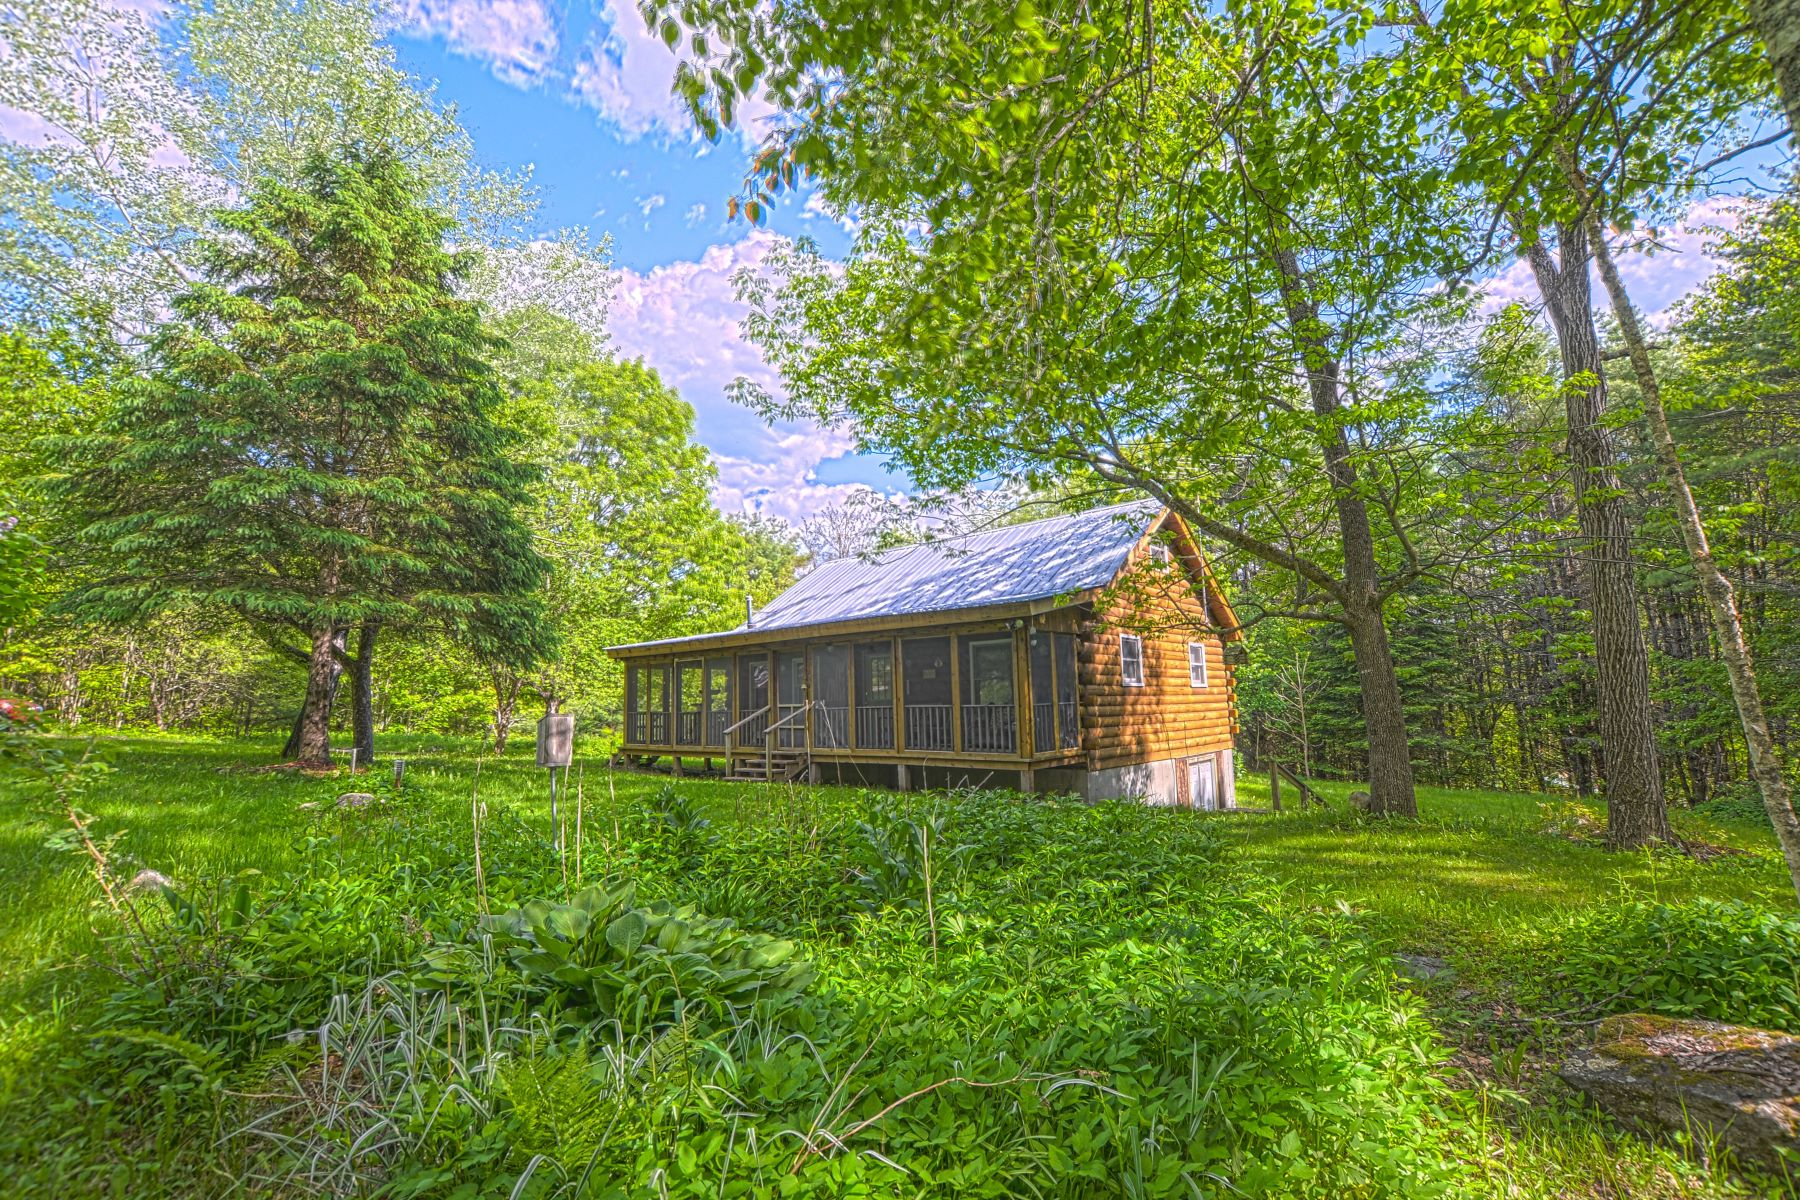 single family homes for Sale at Log Cabin in Newbury 1161 Tenney Pond Rd Newbury, Vermont 05051 United States